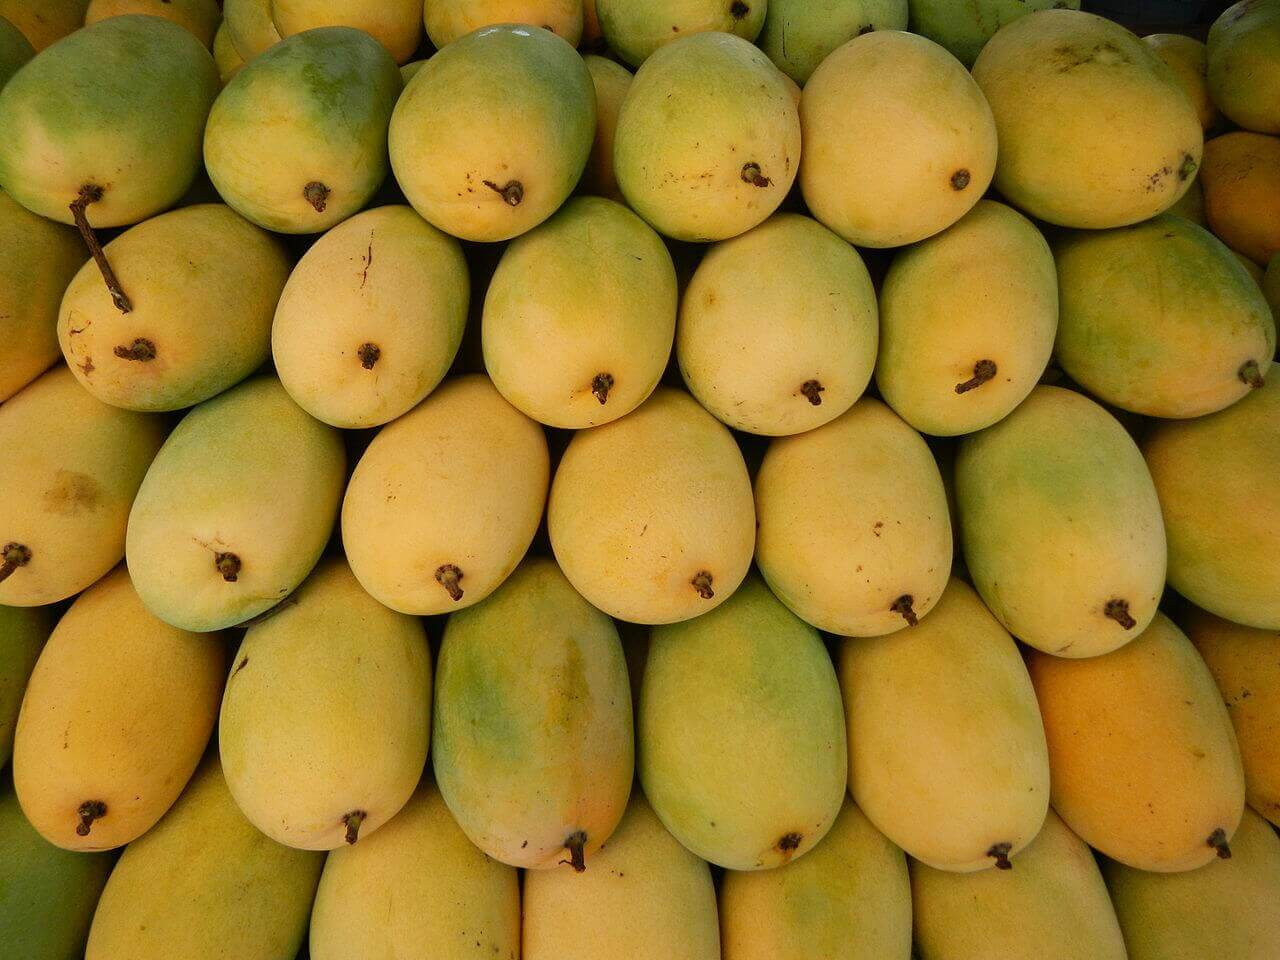 Fresh mangoes ready to eat